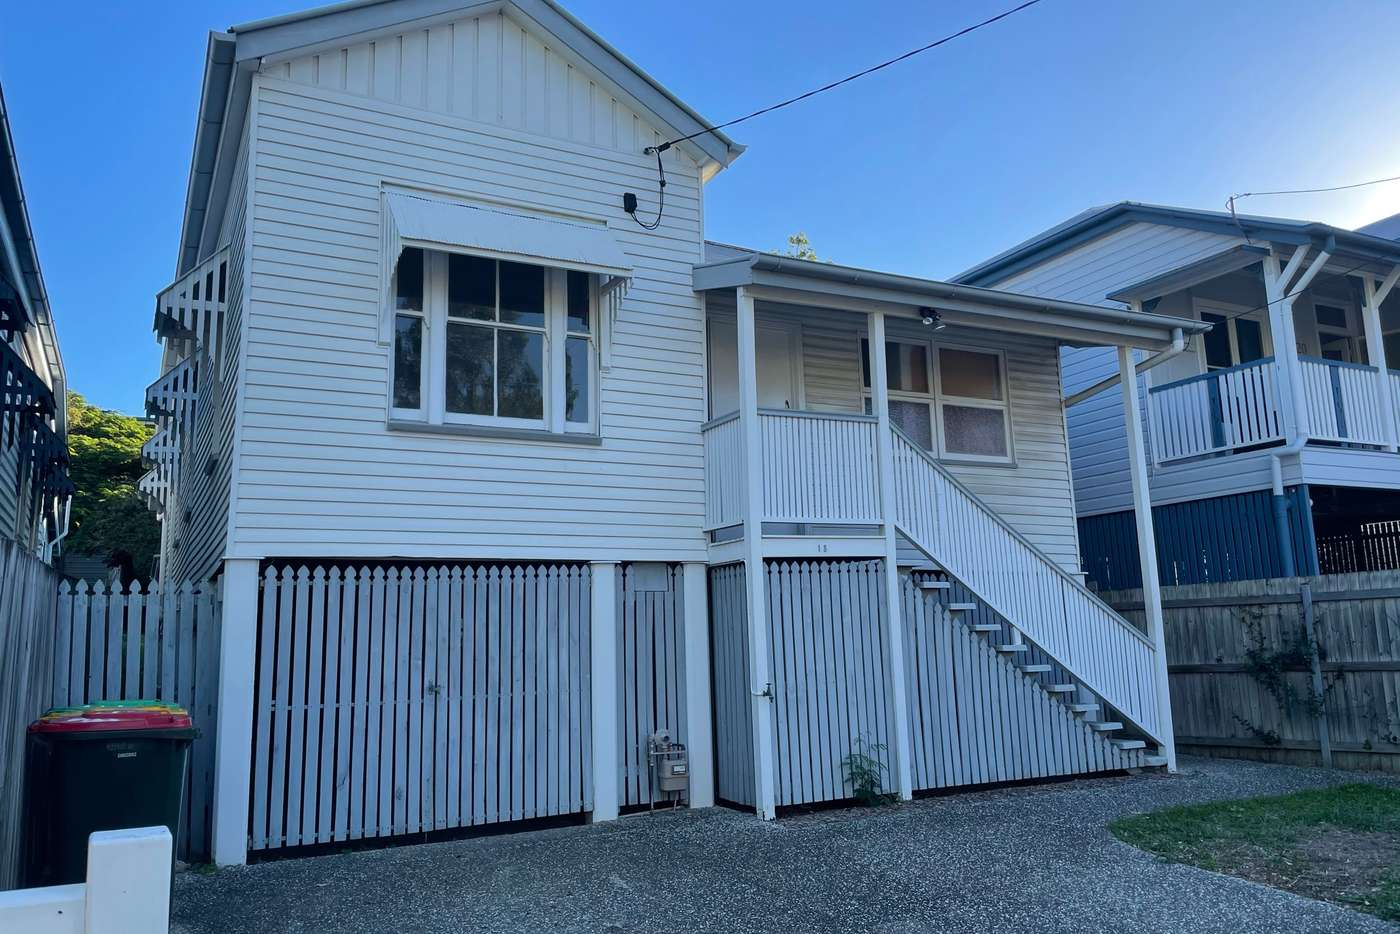 Main view of Homely house listing, 18 Grimes Street, Auchenflower QLD 4066